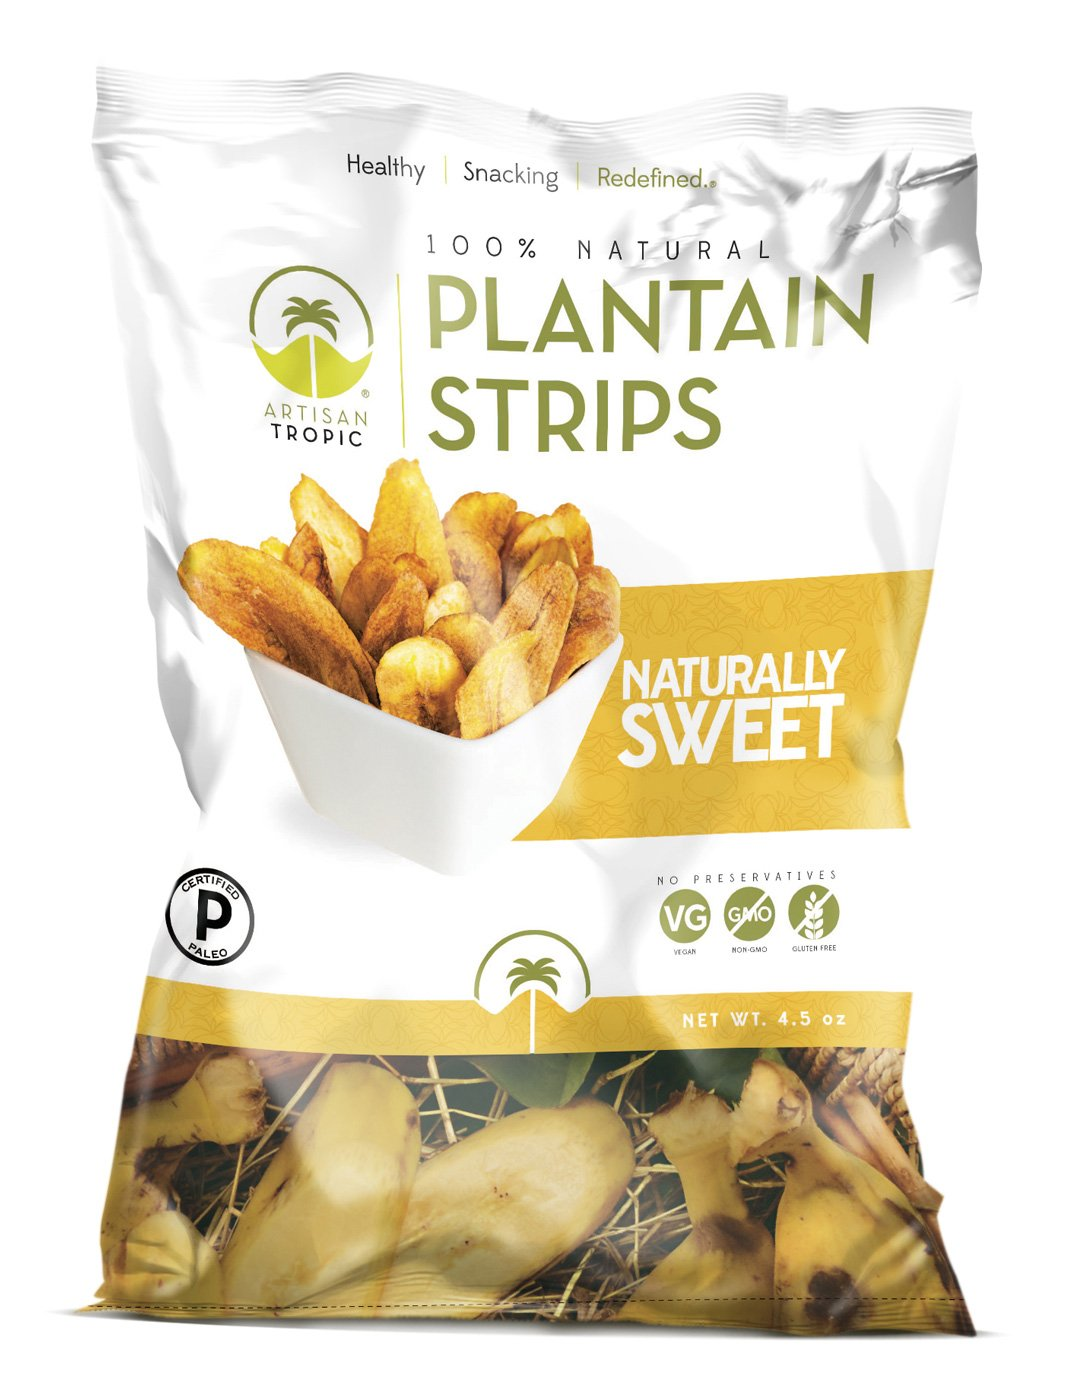 Artisan Tropic Plantain Strips, Naturally Sweet, Cooked in Sustainable Palm Oil, Paleo Certified, 4.5 Oz, (2 Pack)